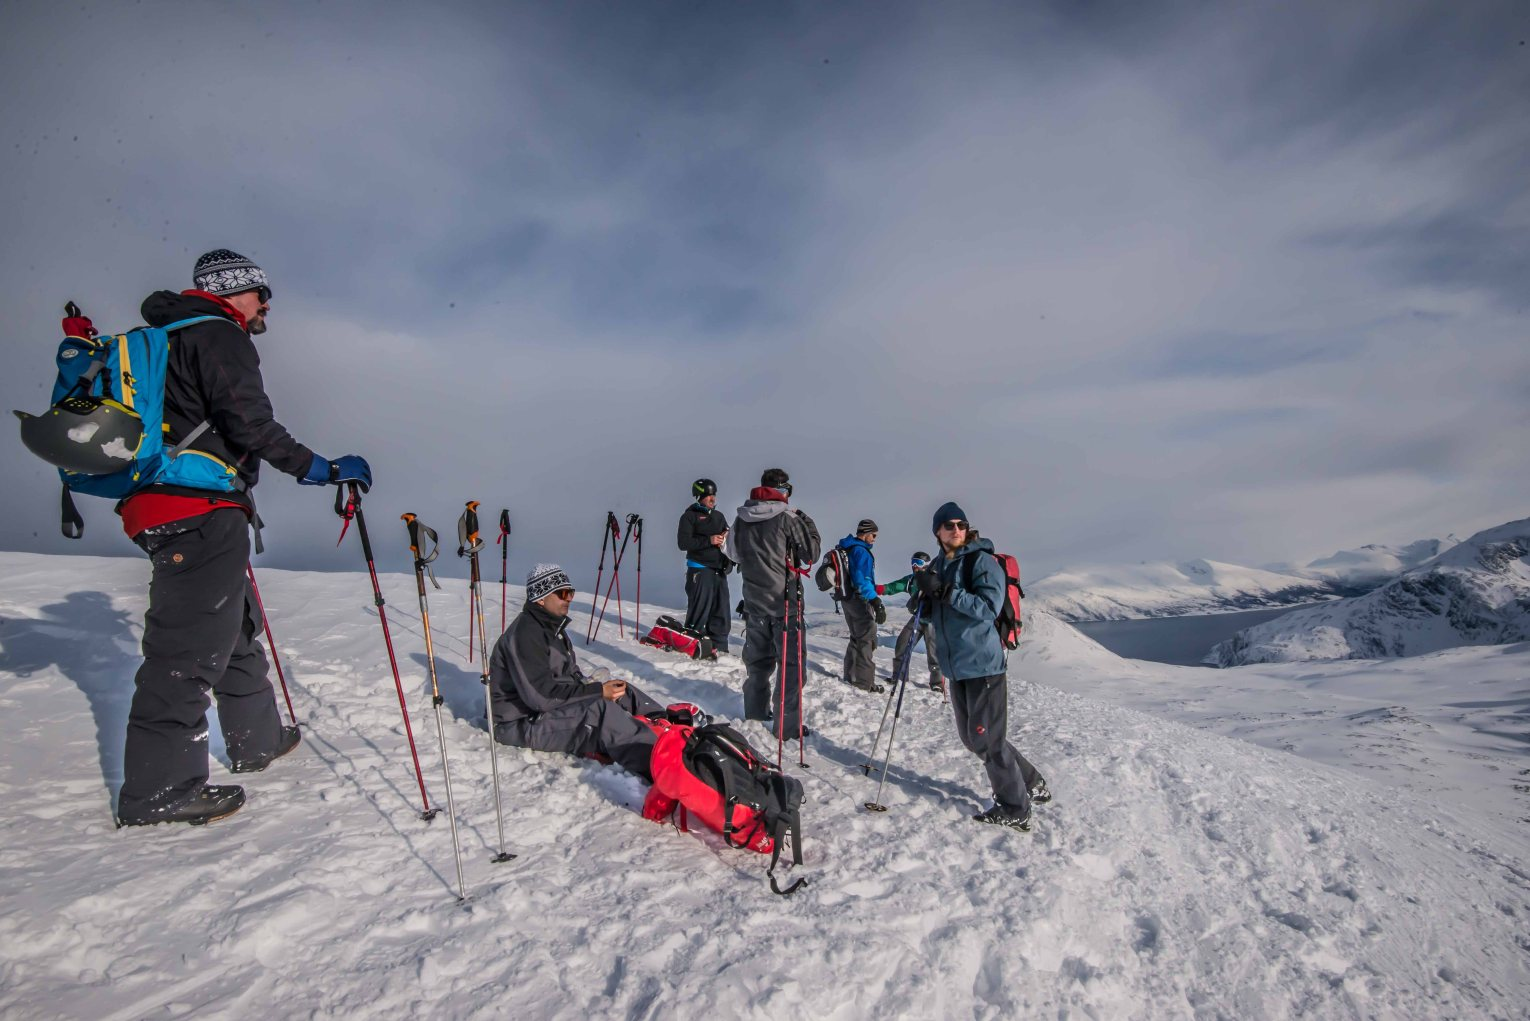 The group is on top of Russelvfjellet, ready for snowboarding.